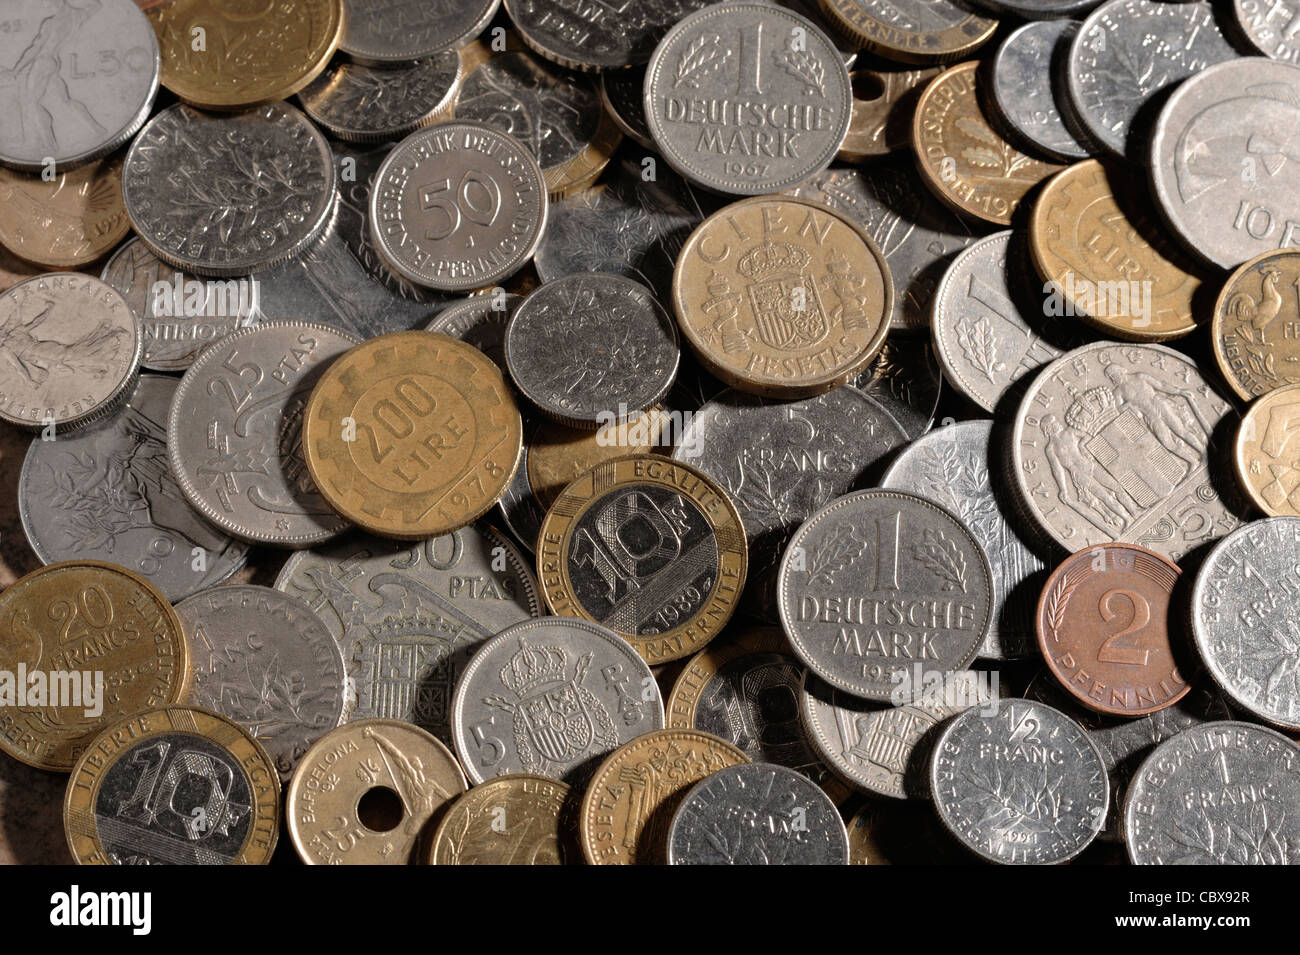 Coins from Europe before the Euro - Stock Image